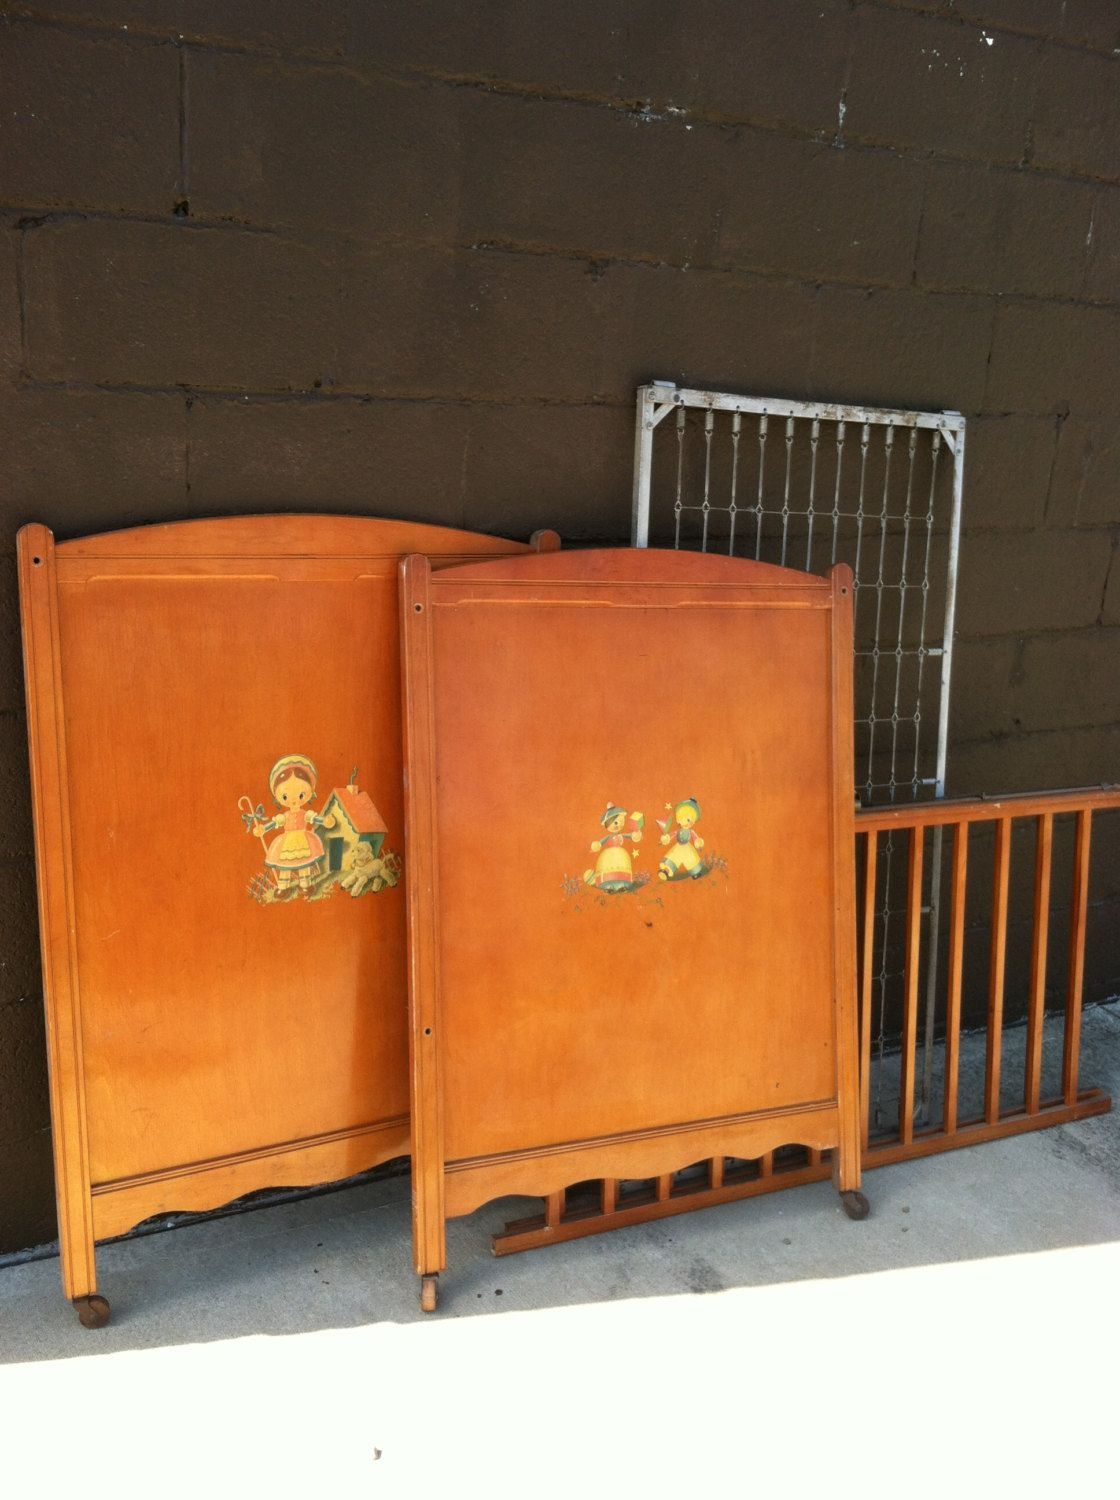 Gold crib for sale - Gold Crib For Sale 34